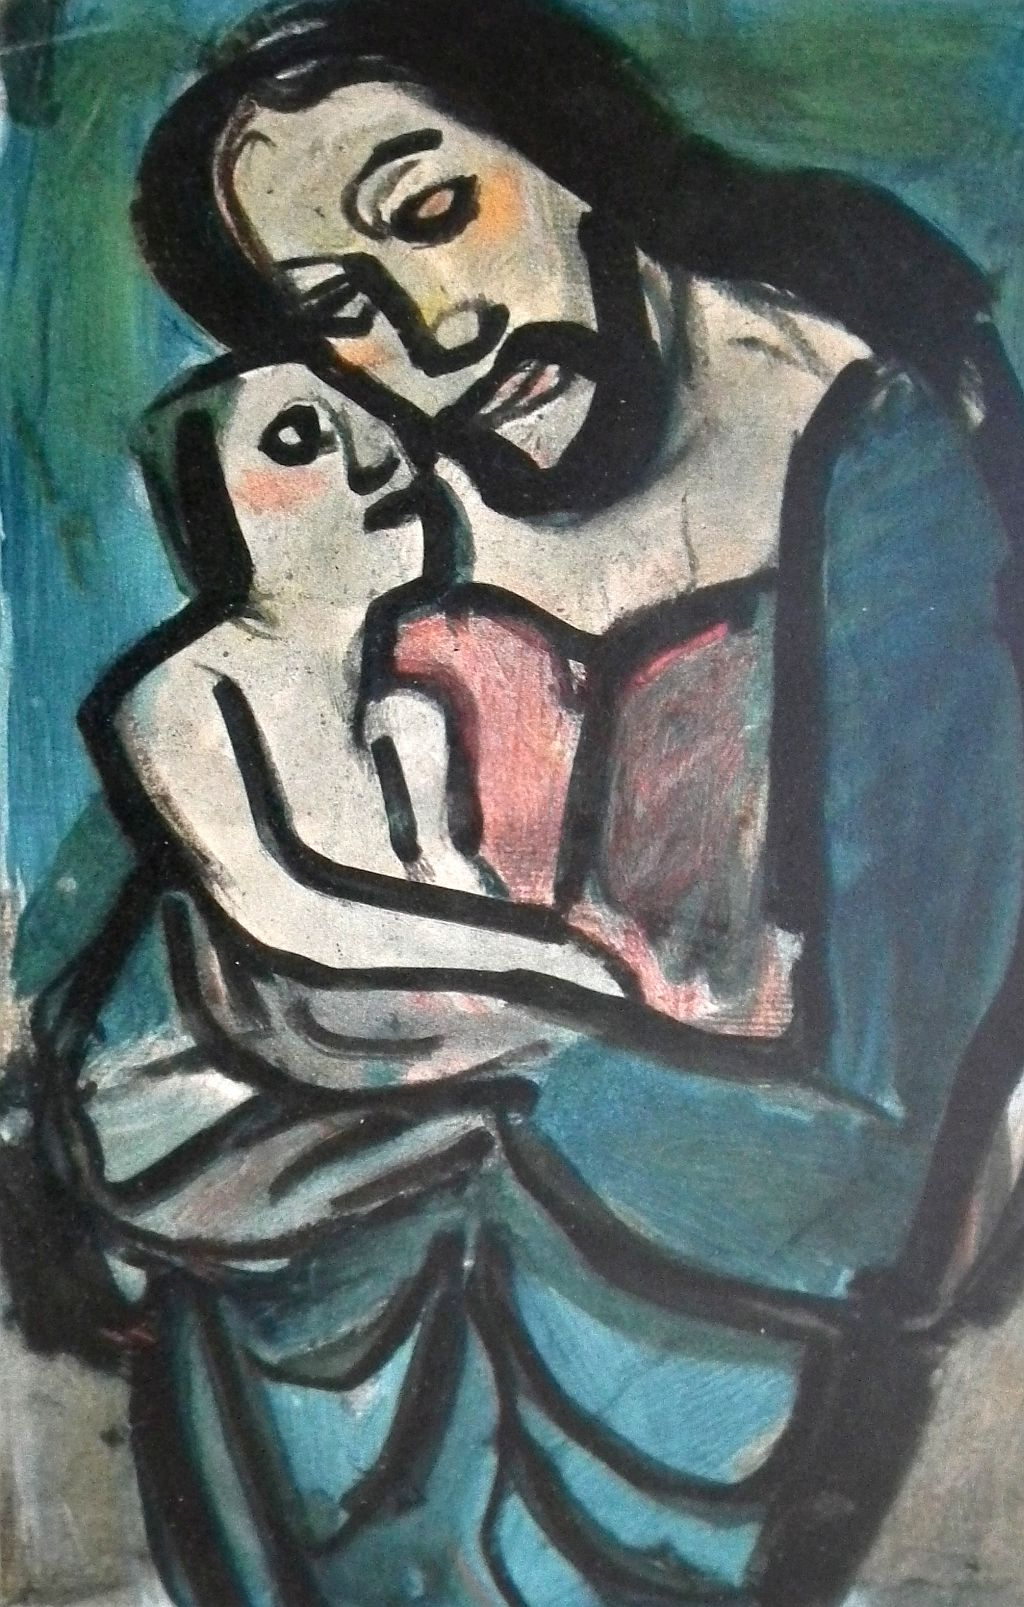 Georges Rouault/ Josef Čapek/ Florian: Ouvres